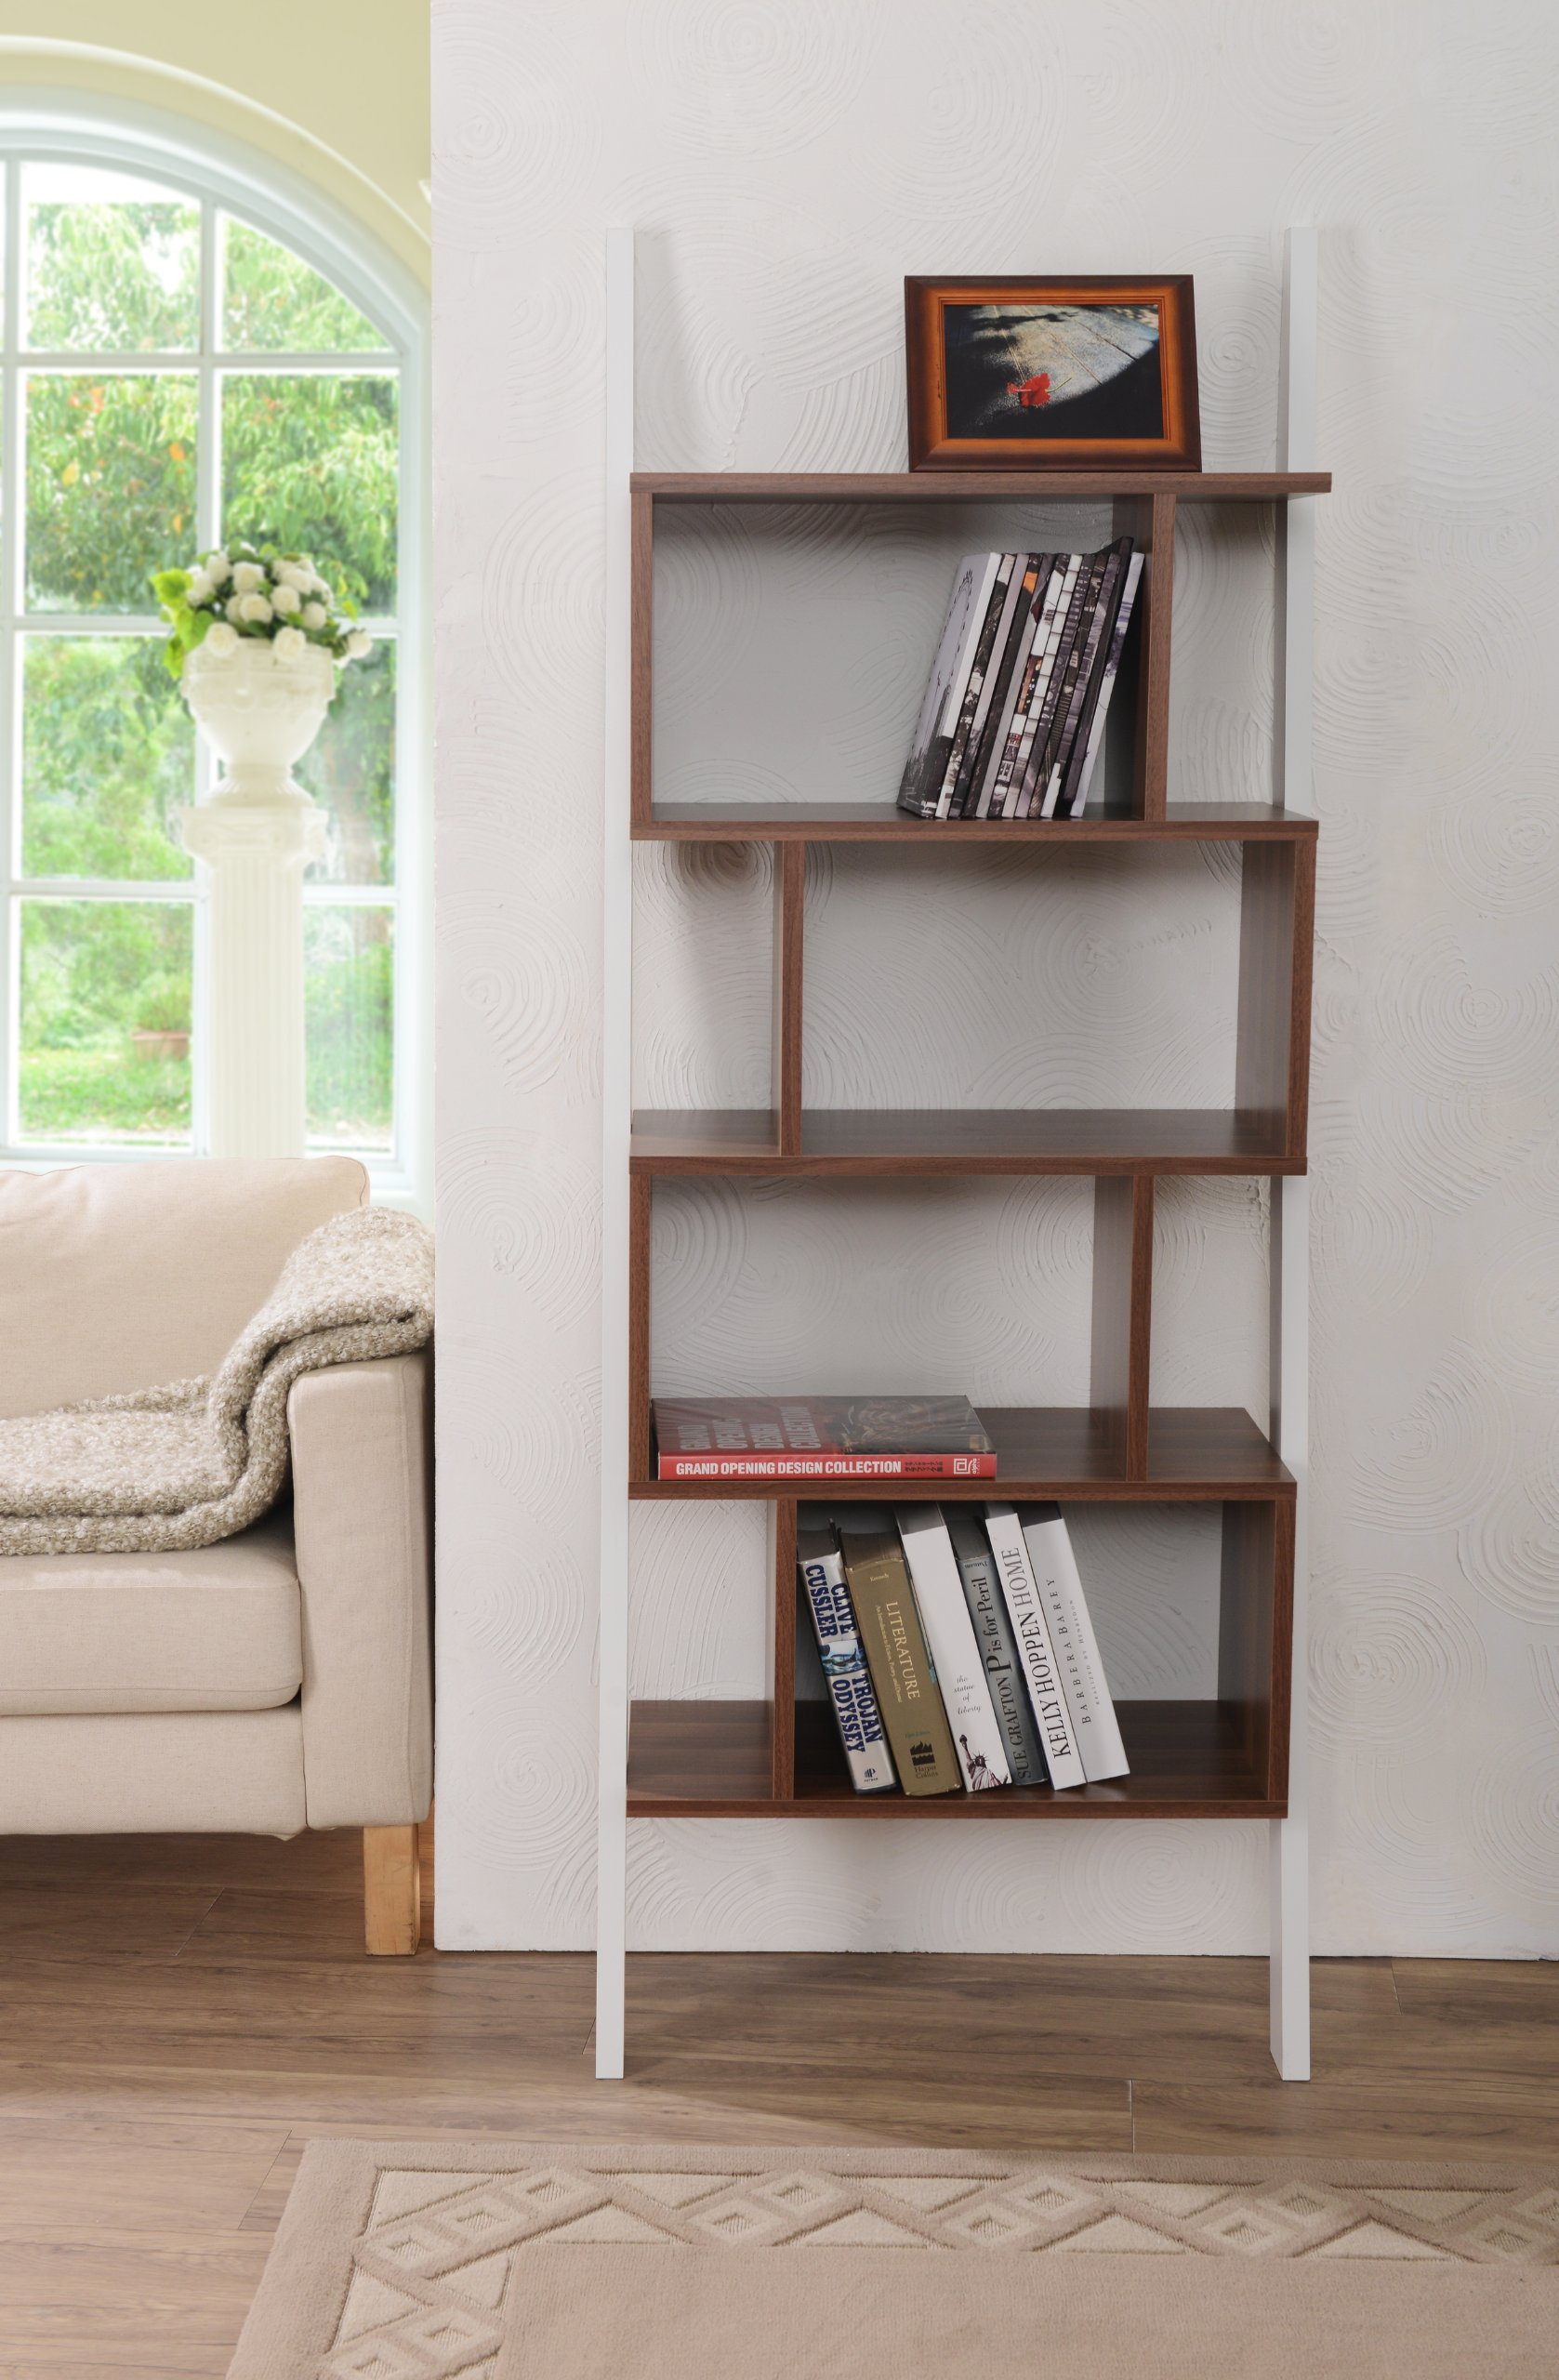 ioHOMES Medies Modern Bookcase and Display Stand, White and Walnut Finish